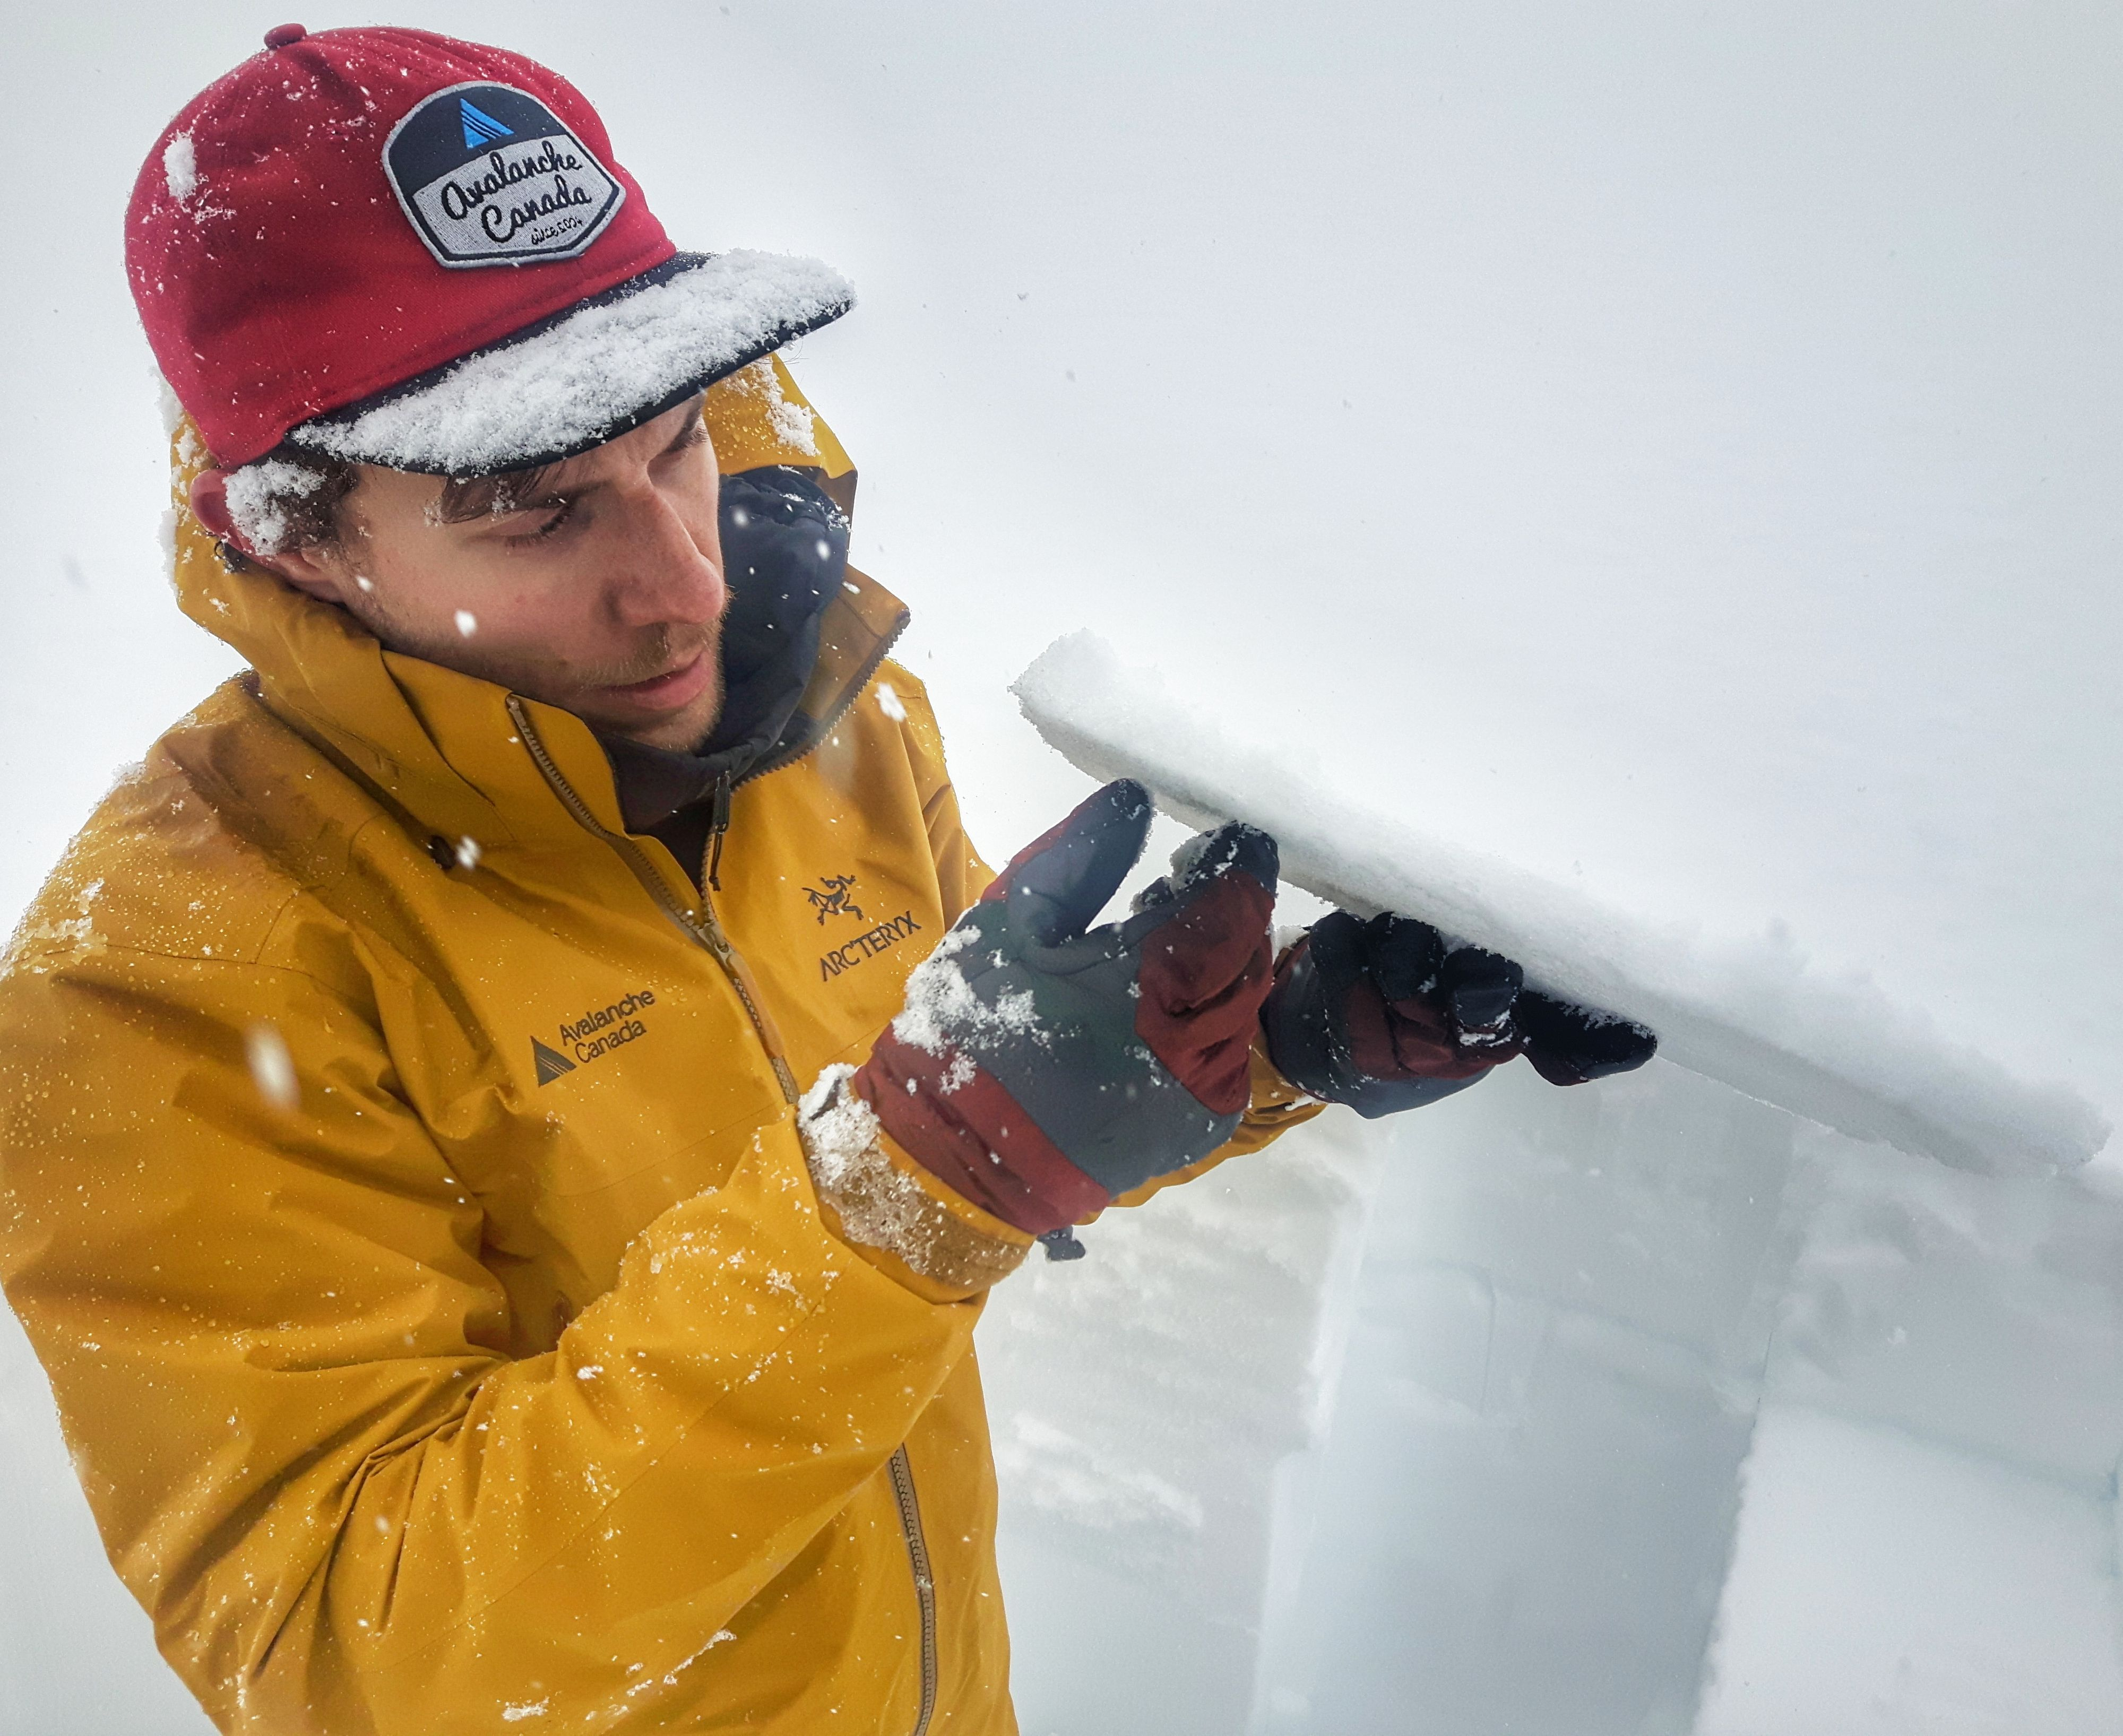 There are many types of crusts, which are formed when the surface snow is melted by sun, rain, or temperature changes, and then refreezes. While they are not weak on their own, avalanches are more likely when a crust lies next to a weak layer because they make for such a great sliding surface.